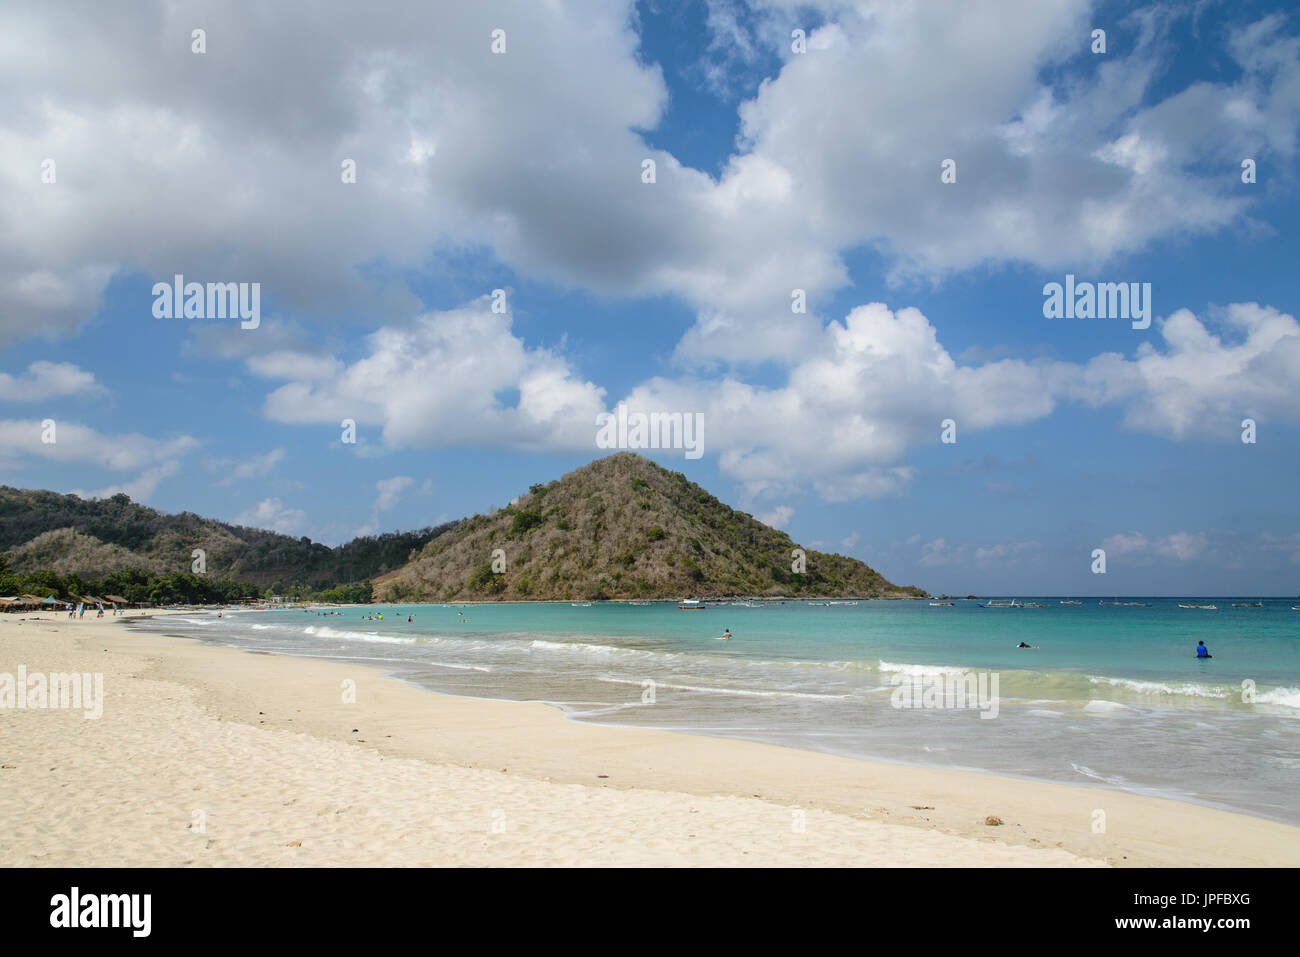 Selong Belanak Beach, Lombok, Indonesia Imagen De Stock